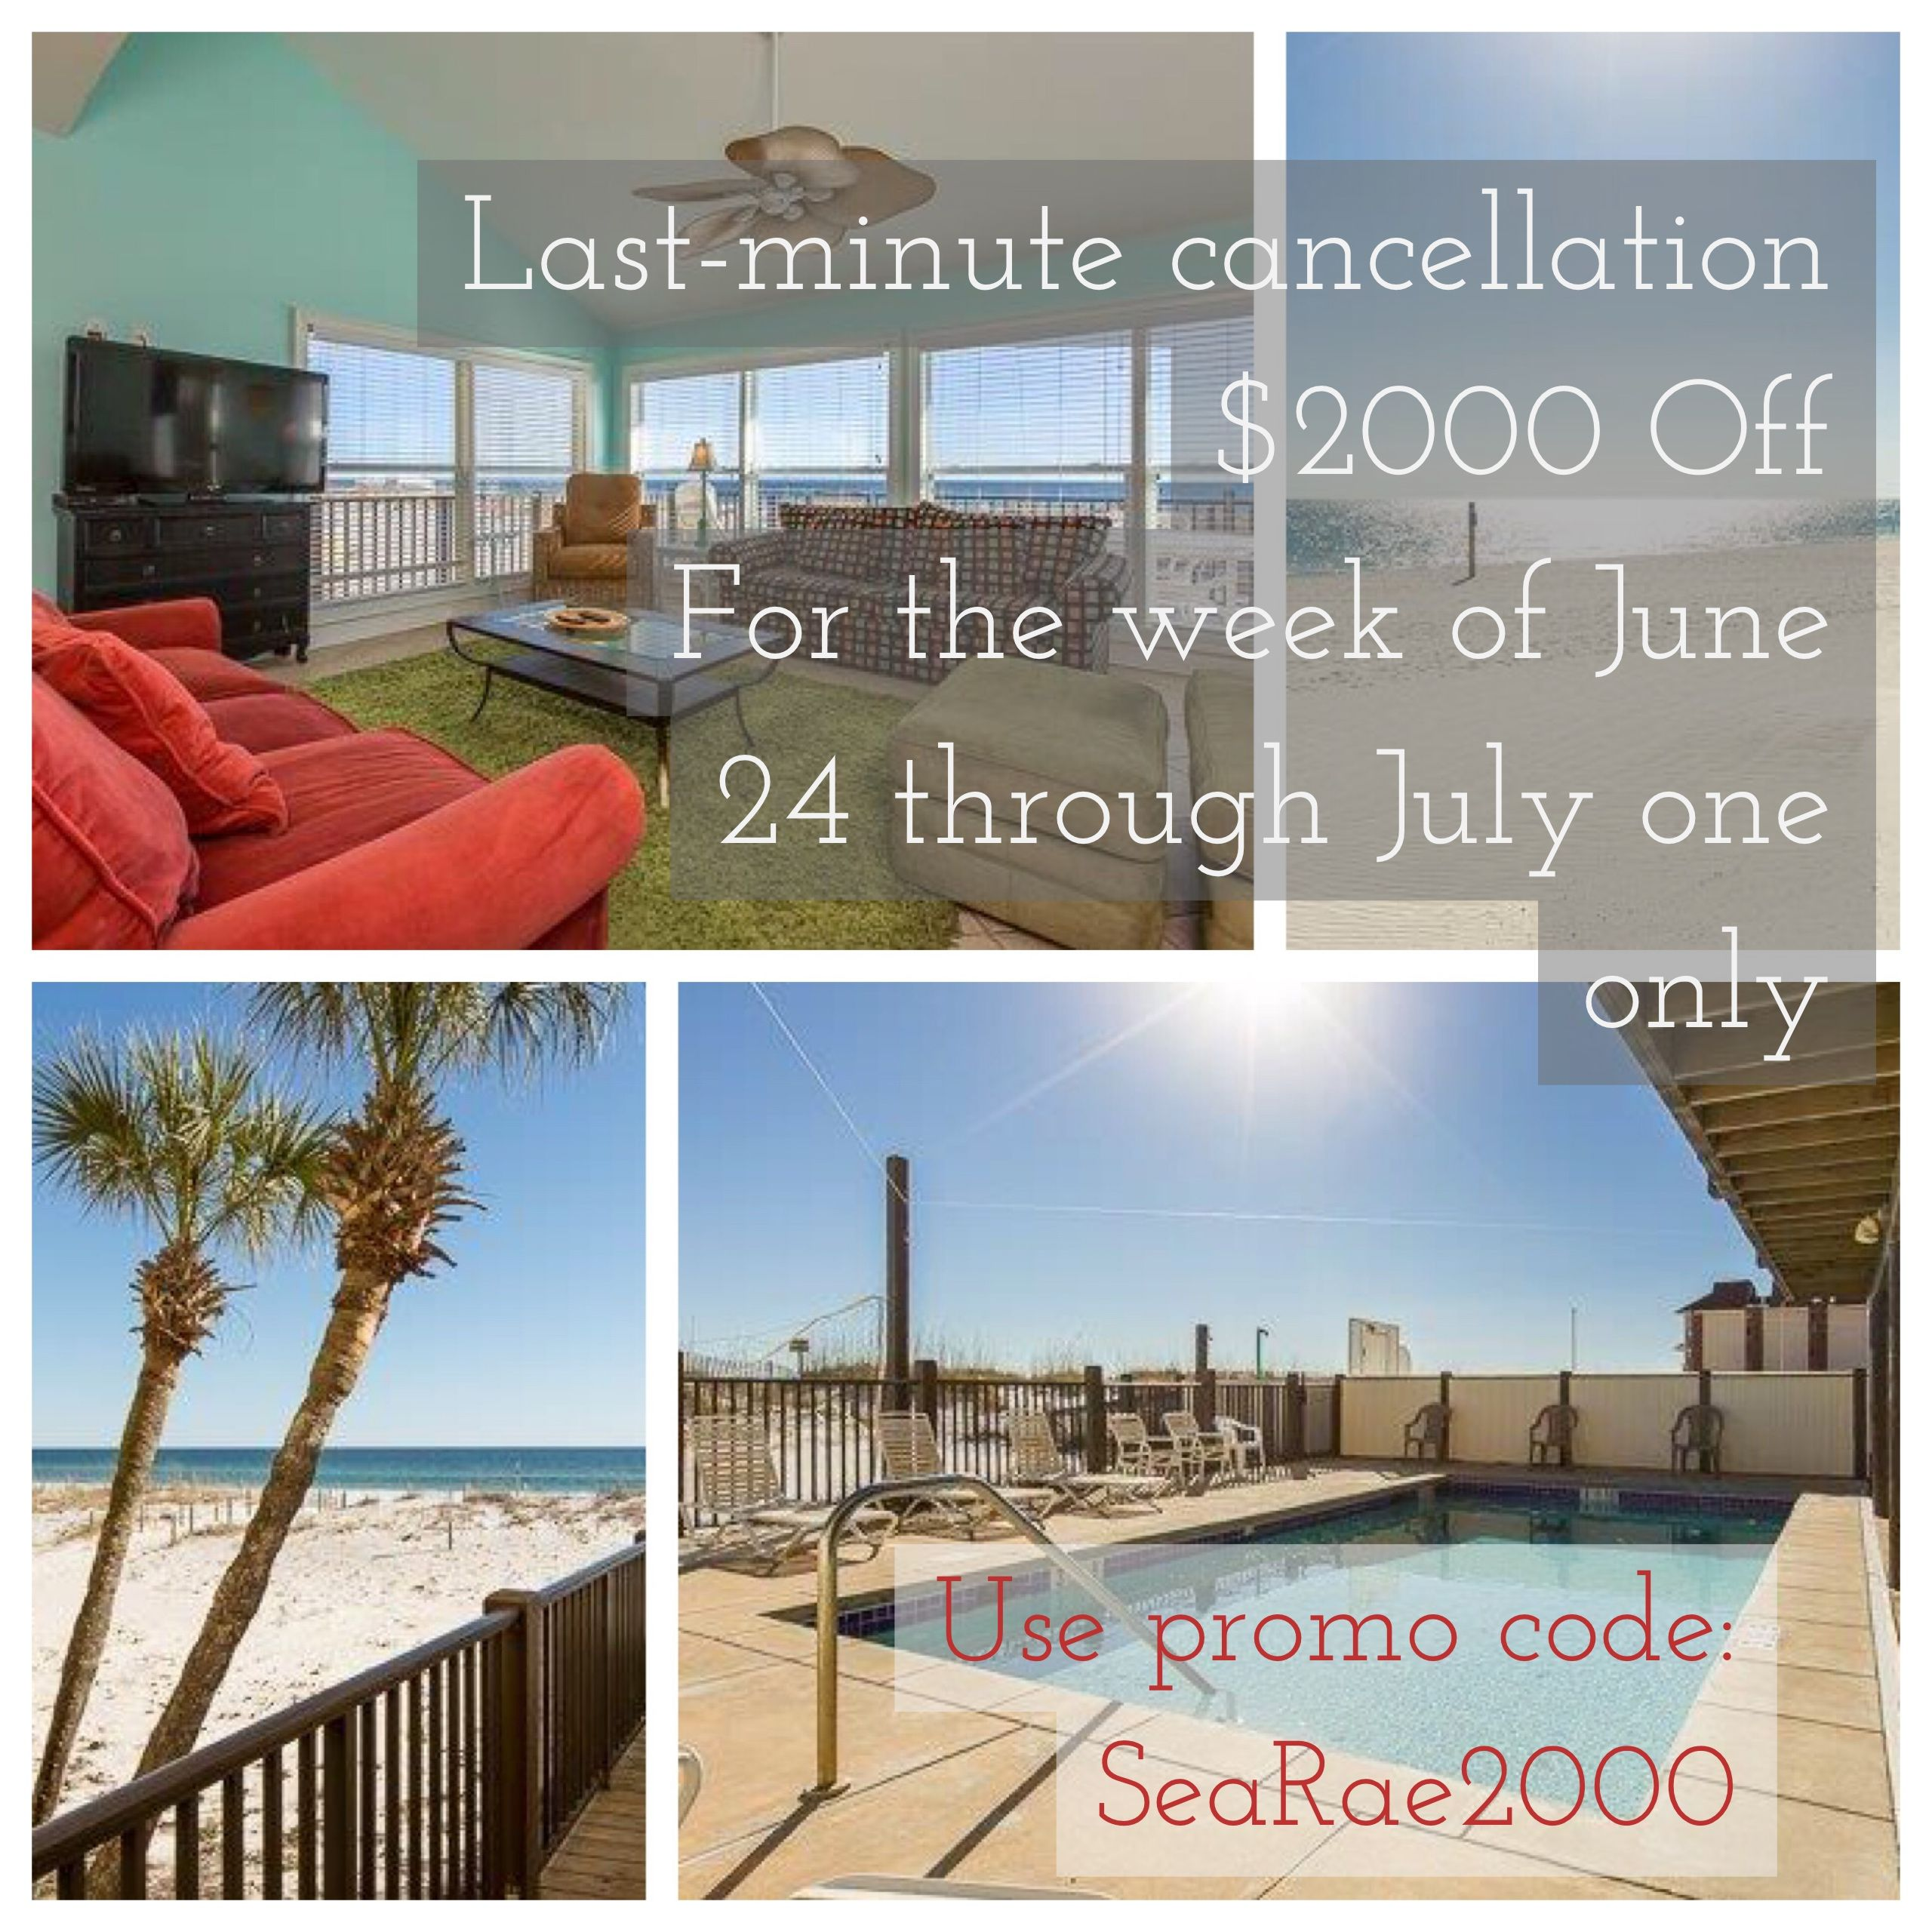 *LAST MINUTE CANCELLATION* $2000 OFF For The Week Of June